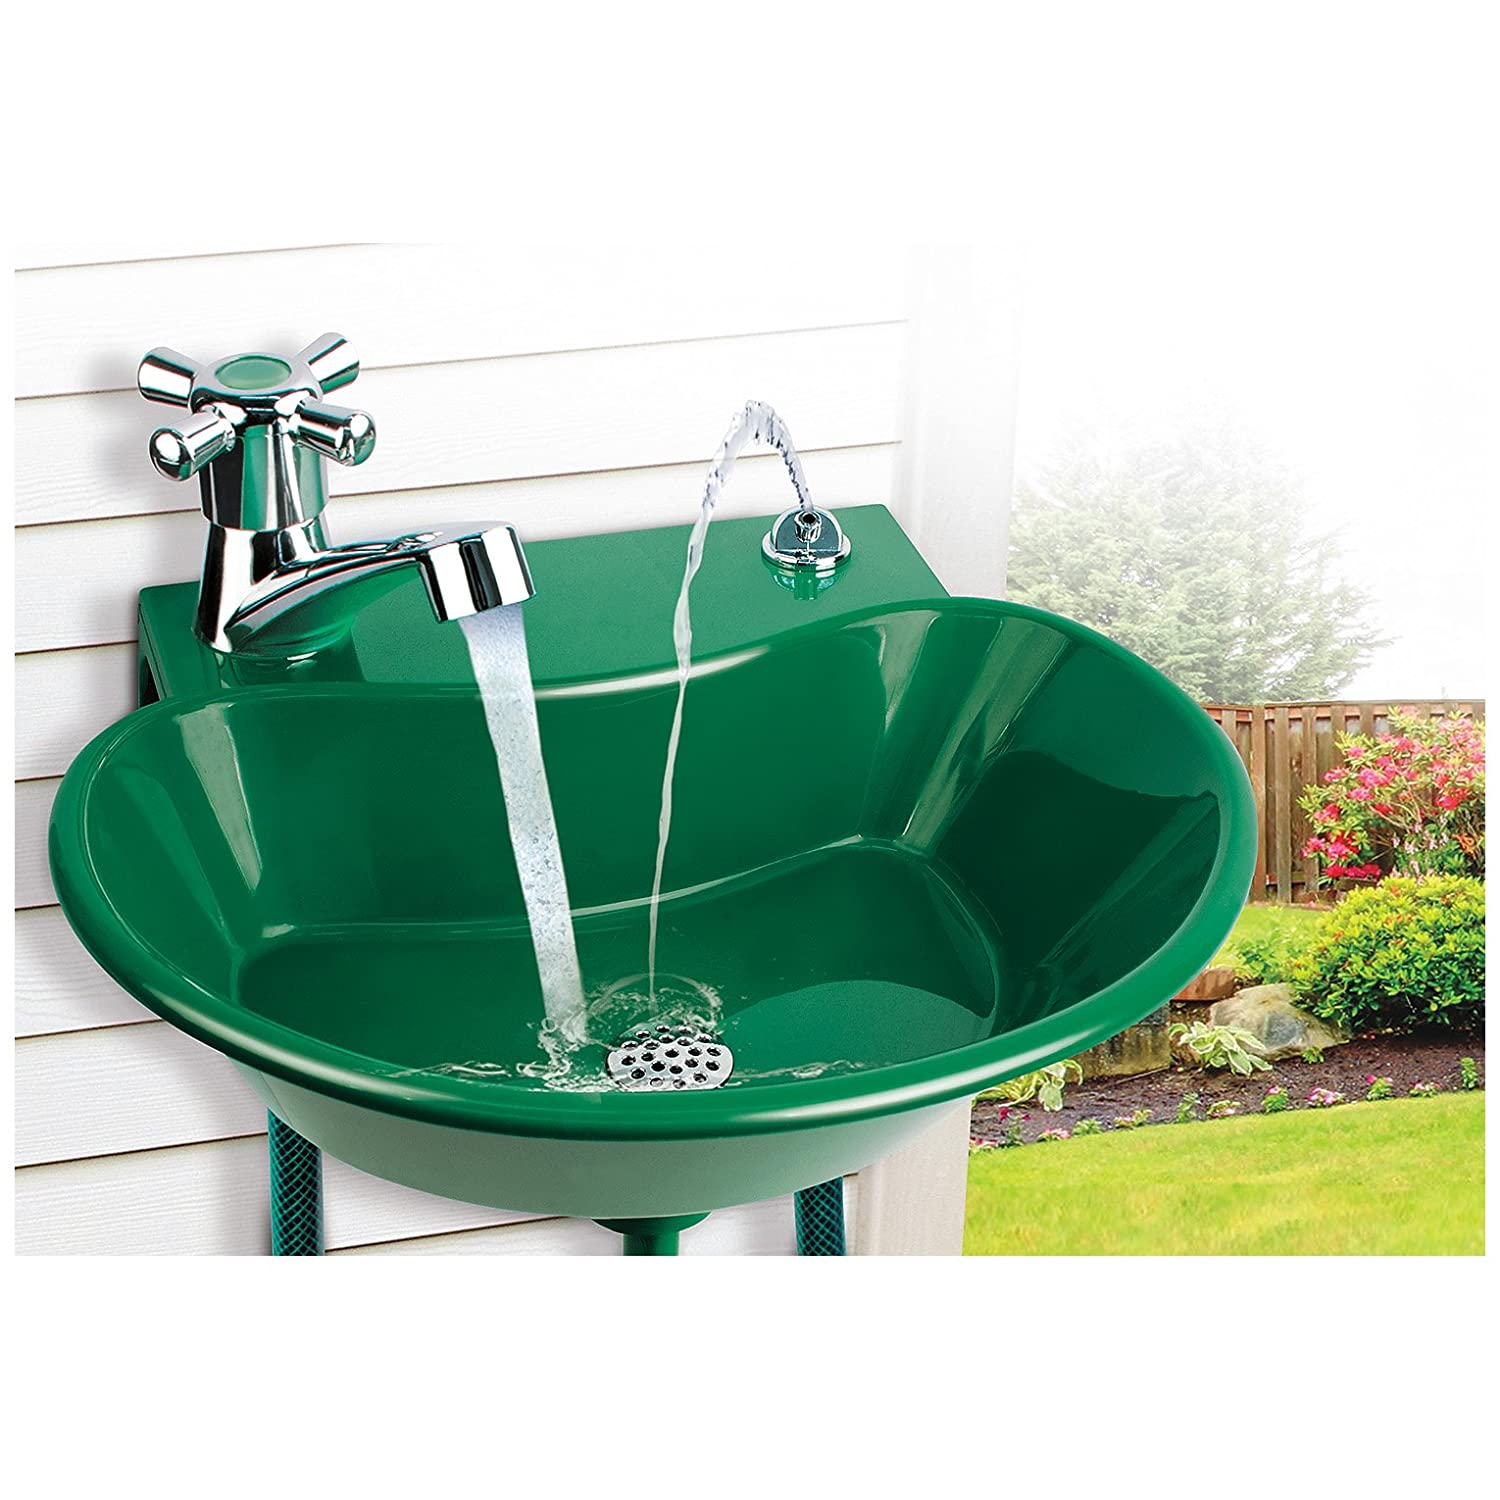 Amazon.com : 2-in-1 Outdoor Water Fountain and Faucet : Garden & Outdoor